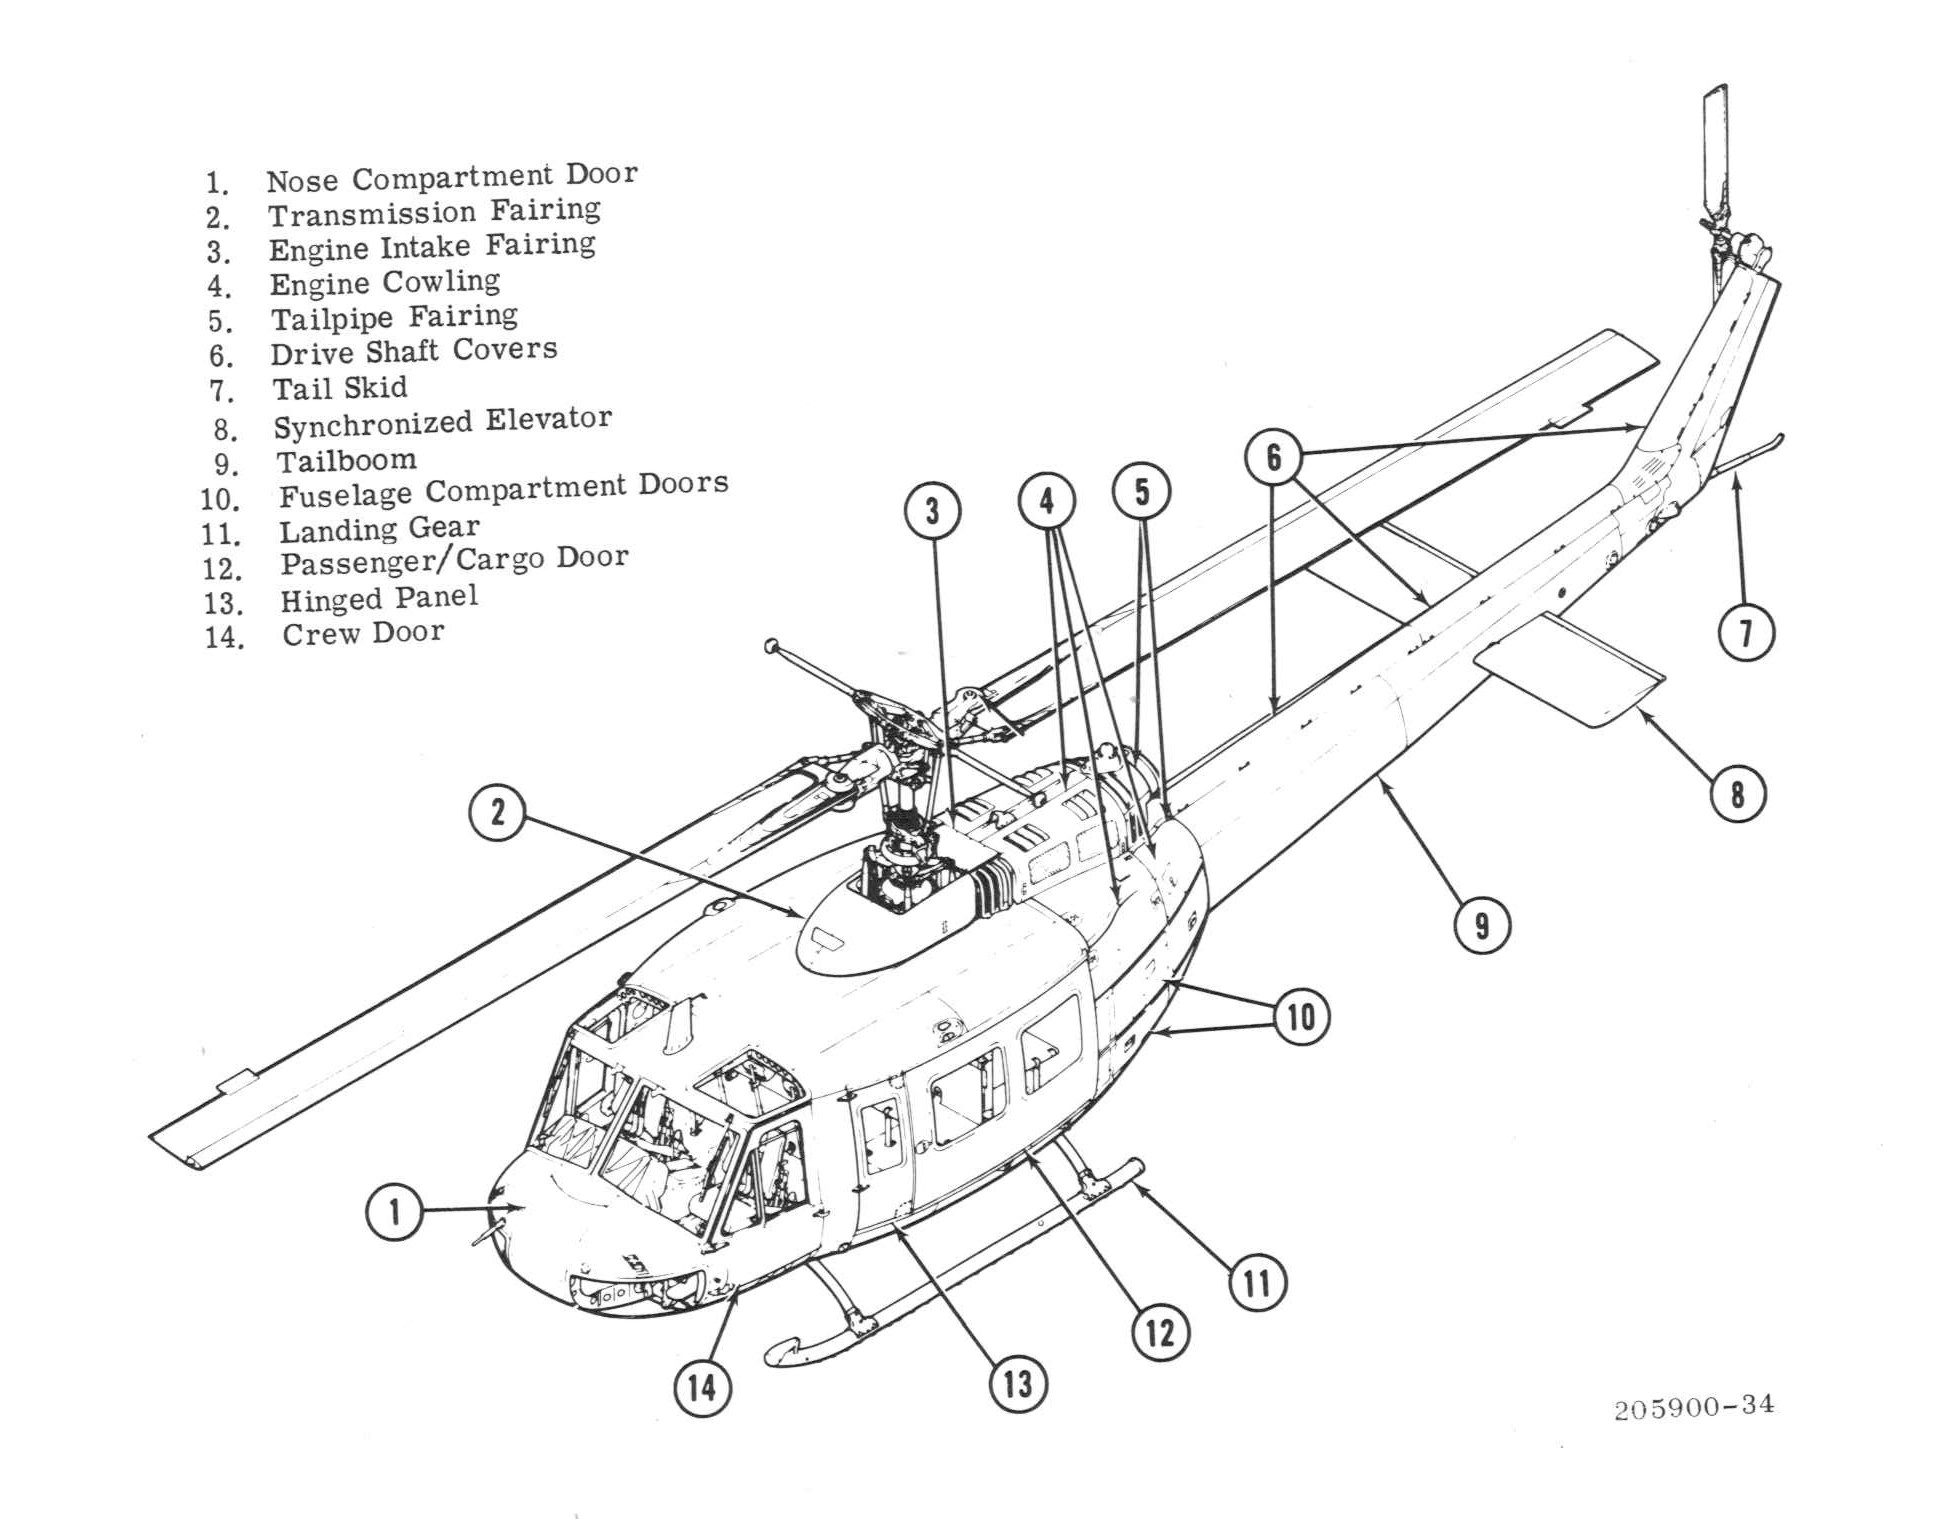 Bell Model 205a 1 Image Downloads